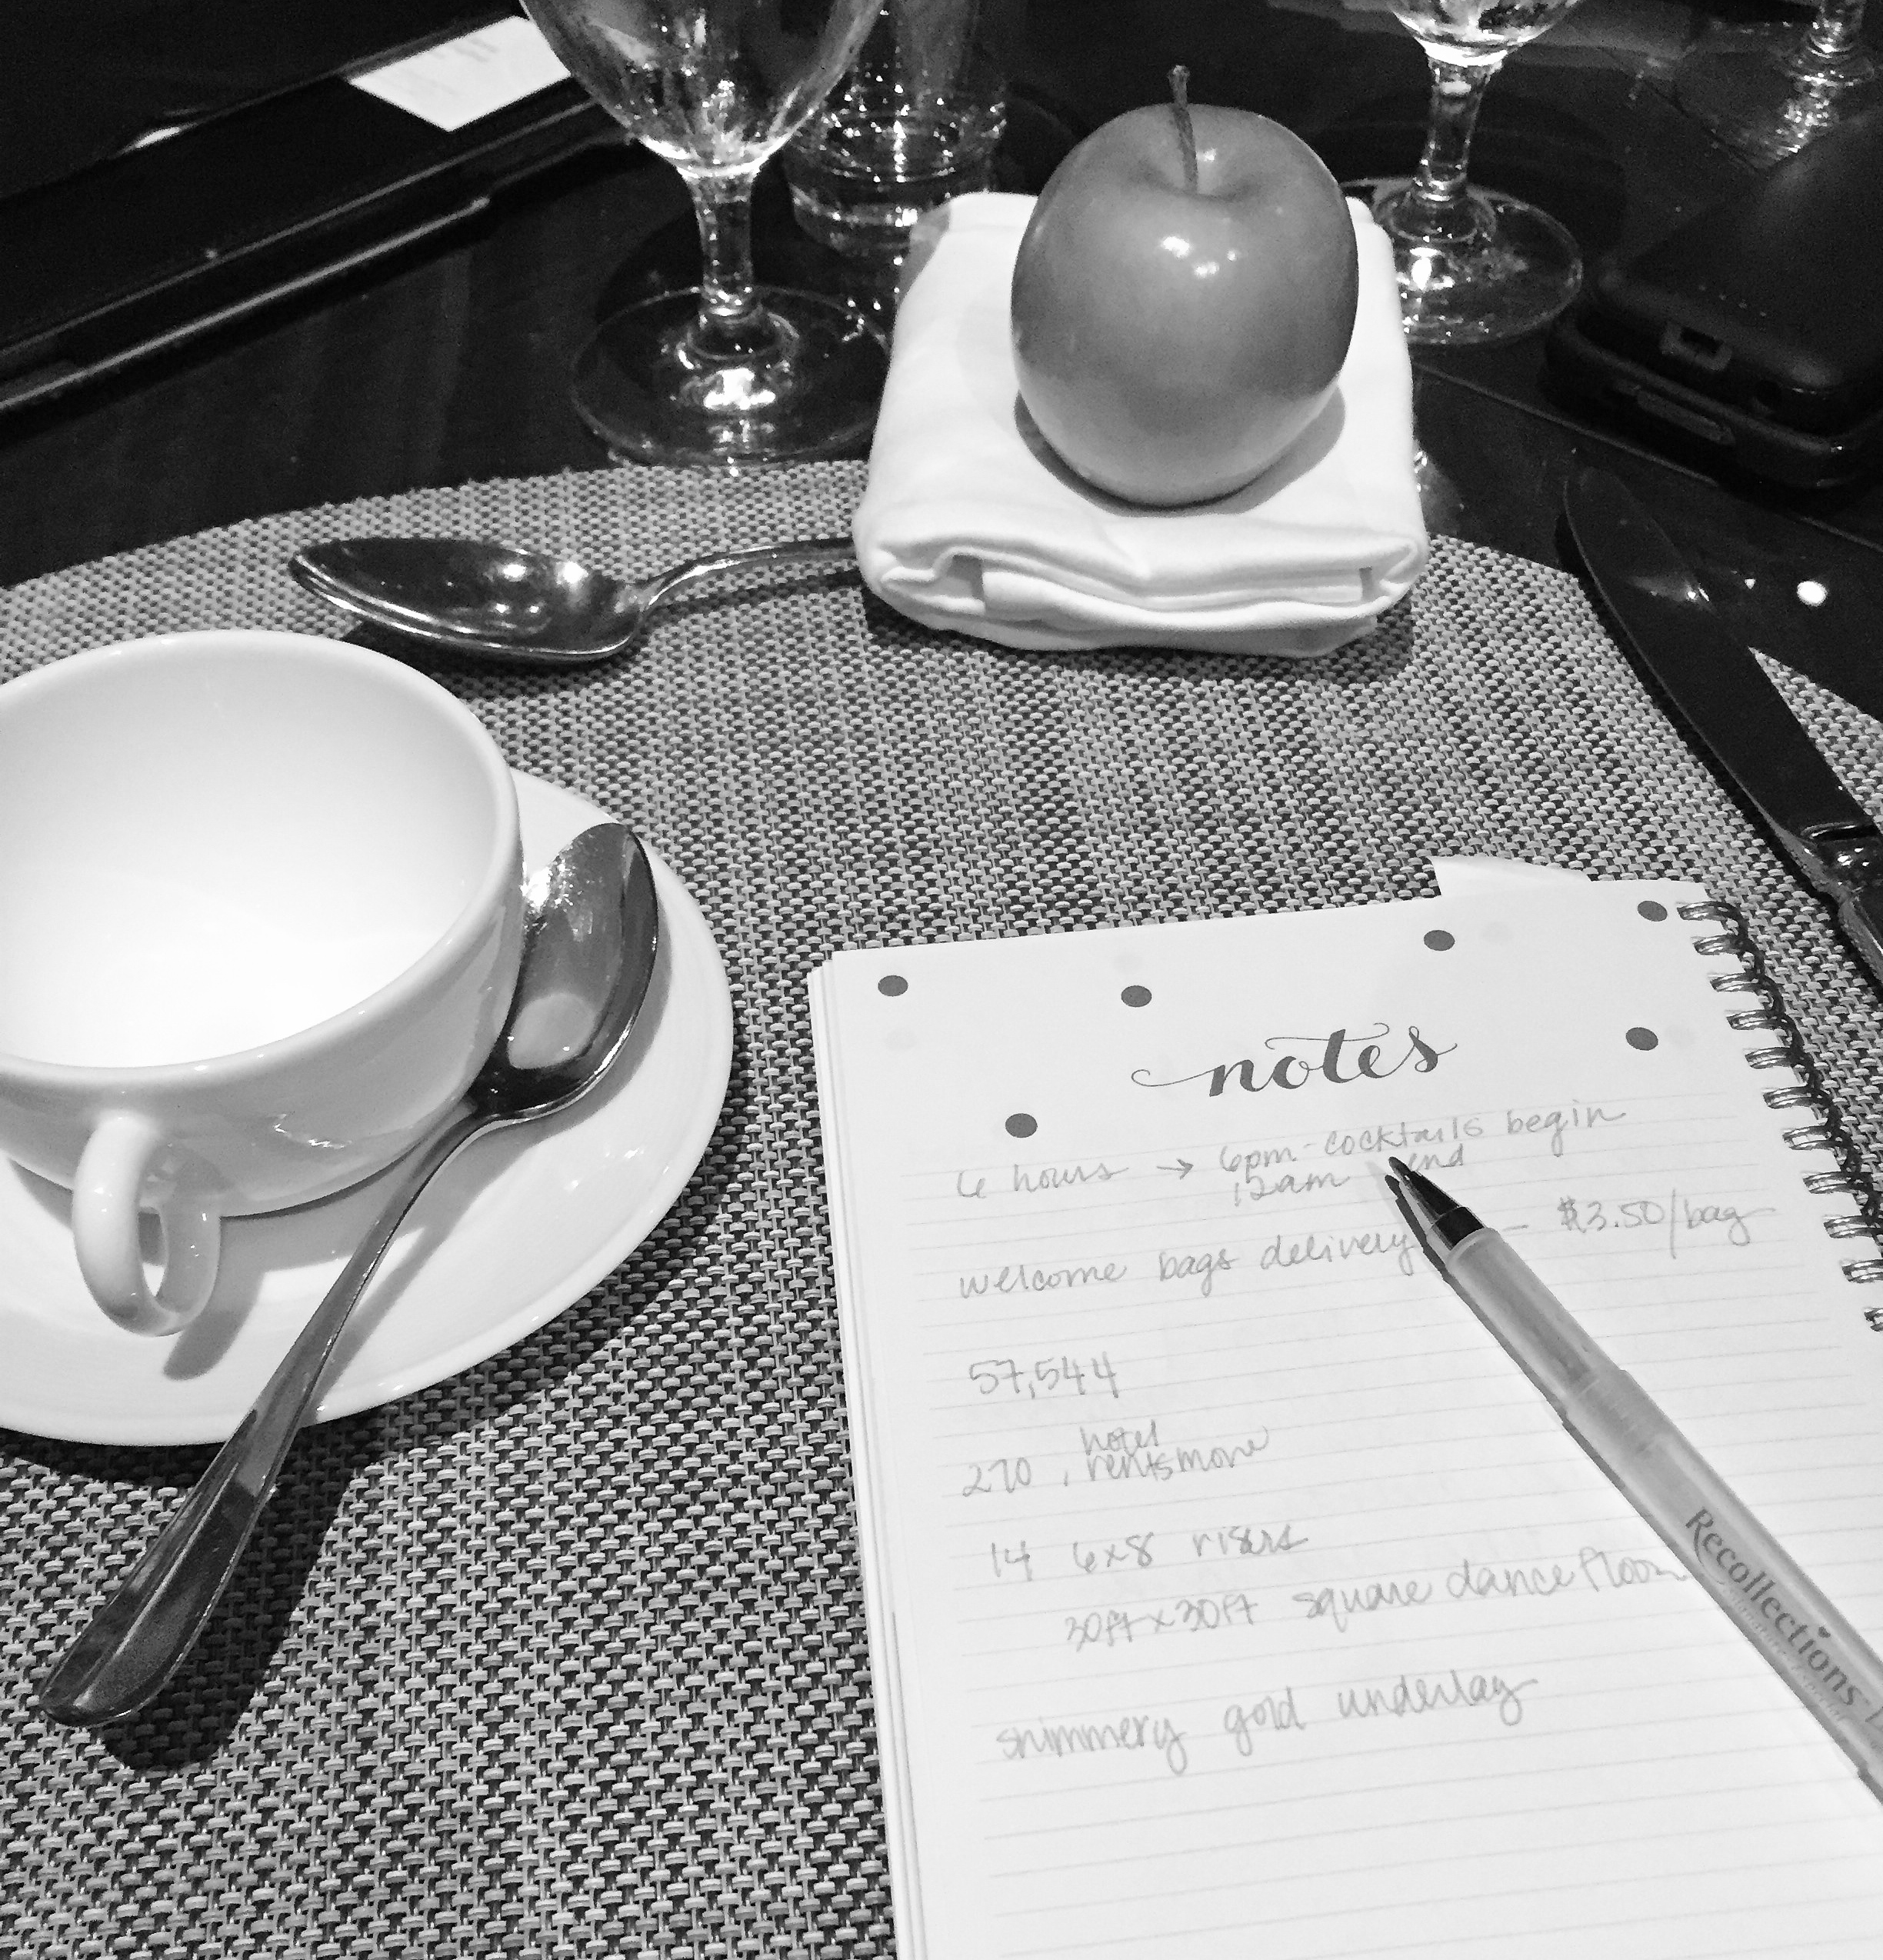 A snap from the venue-finalizing meeting!